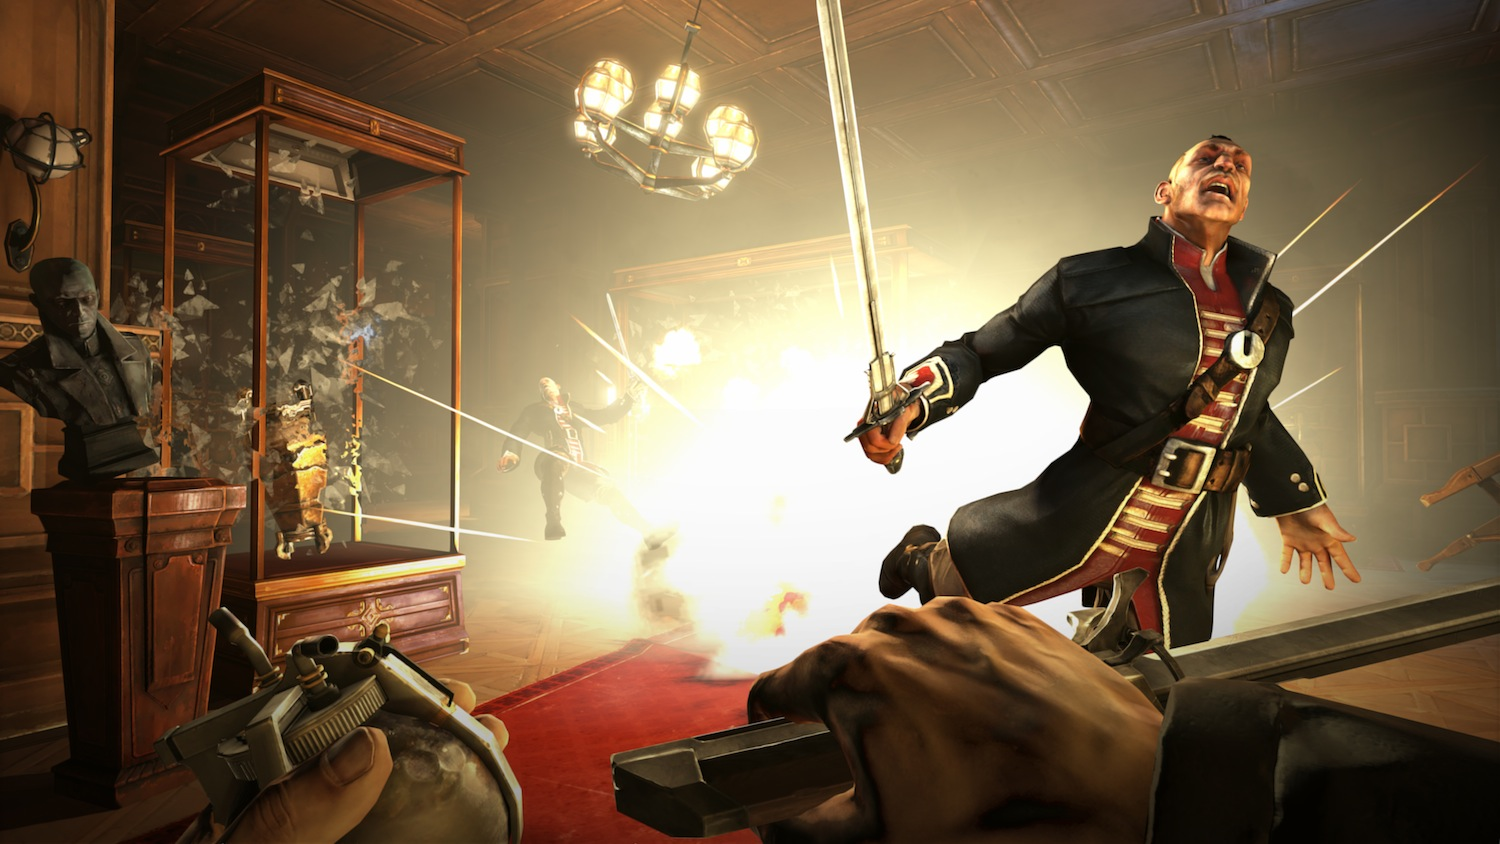 Click here to read 18 Things About &lt;em&gt;Dishonored&lt;/em&gt; That You Should Know